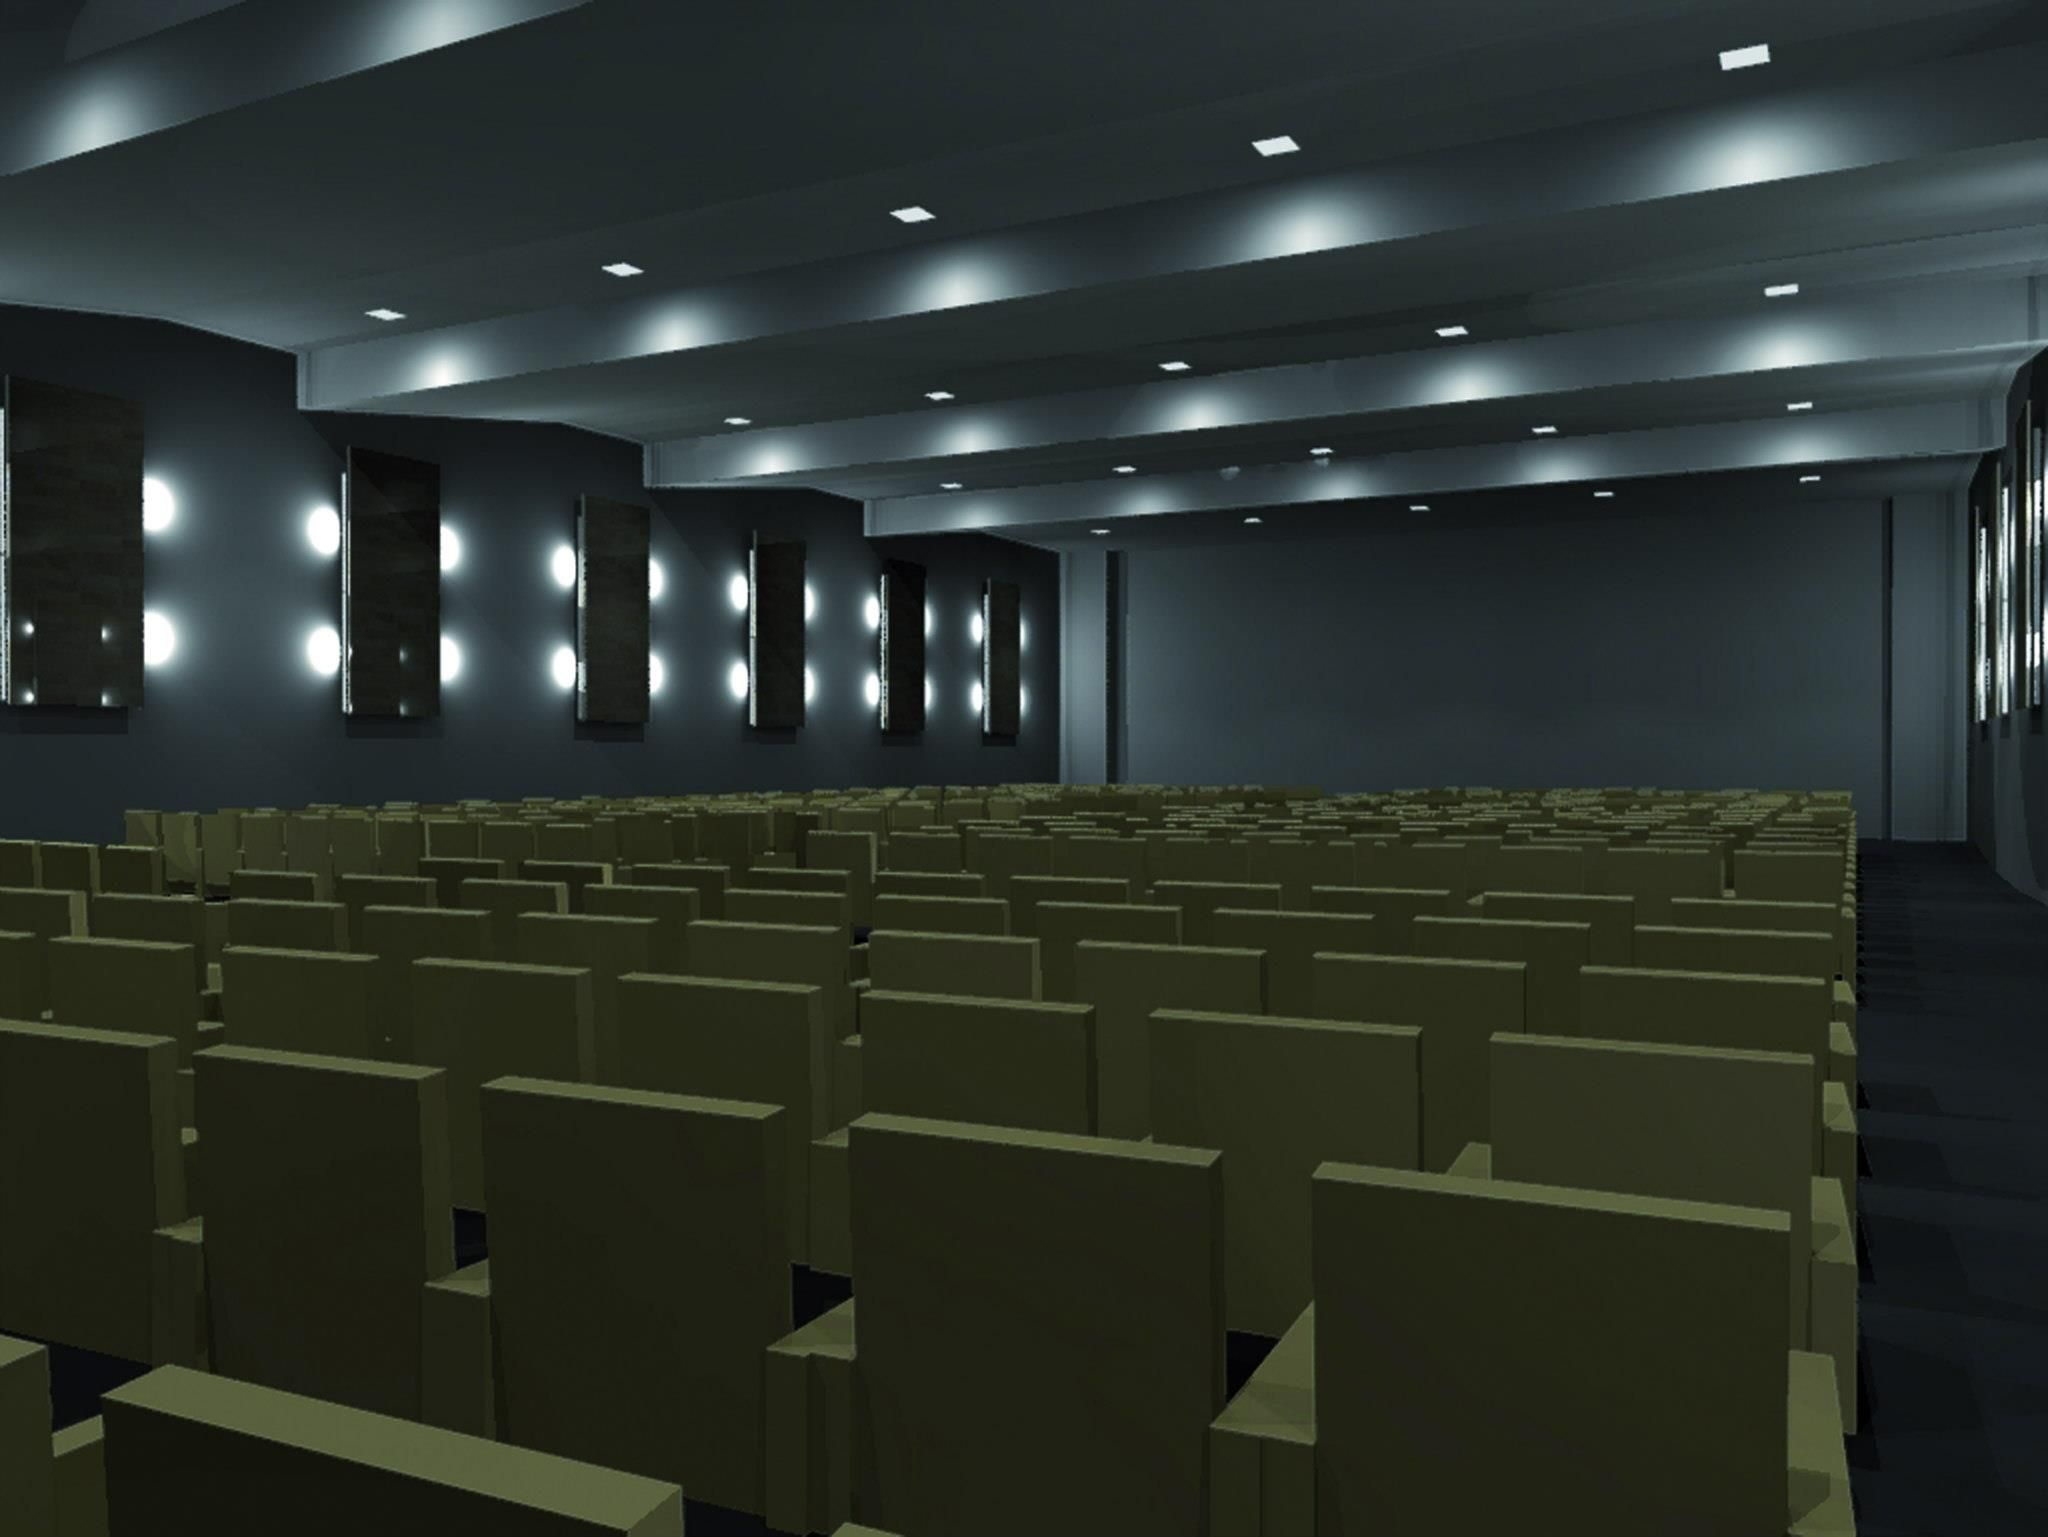 Rendering Of A Lighting Design Project Conference Hall